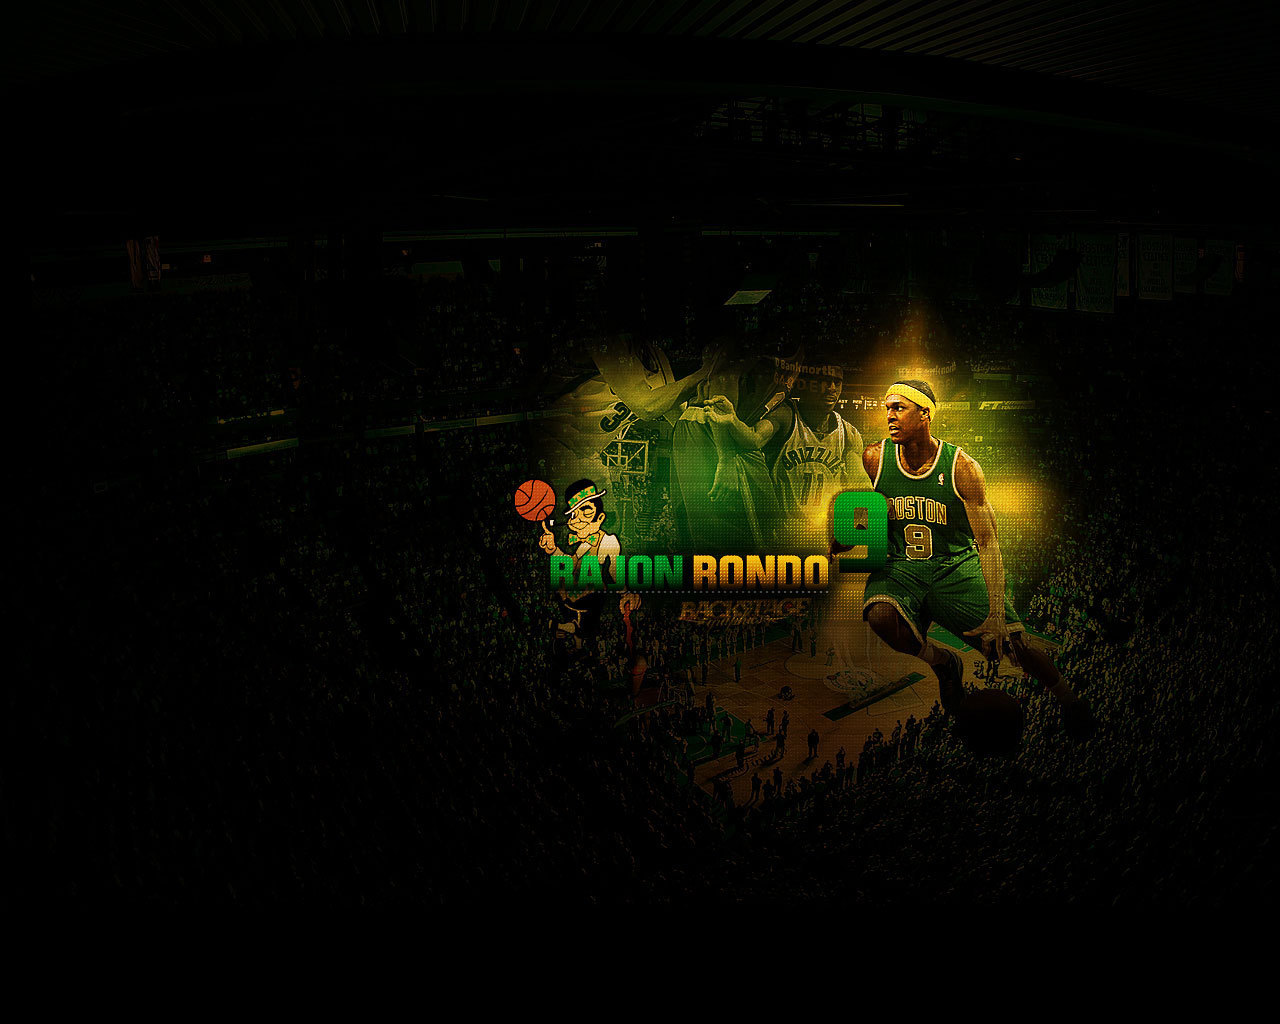 Boston Celtics images rondo HD wallpaper and background photos